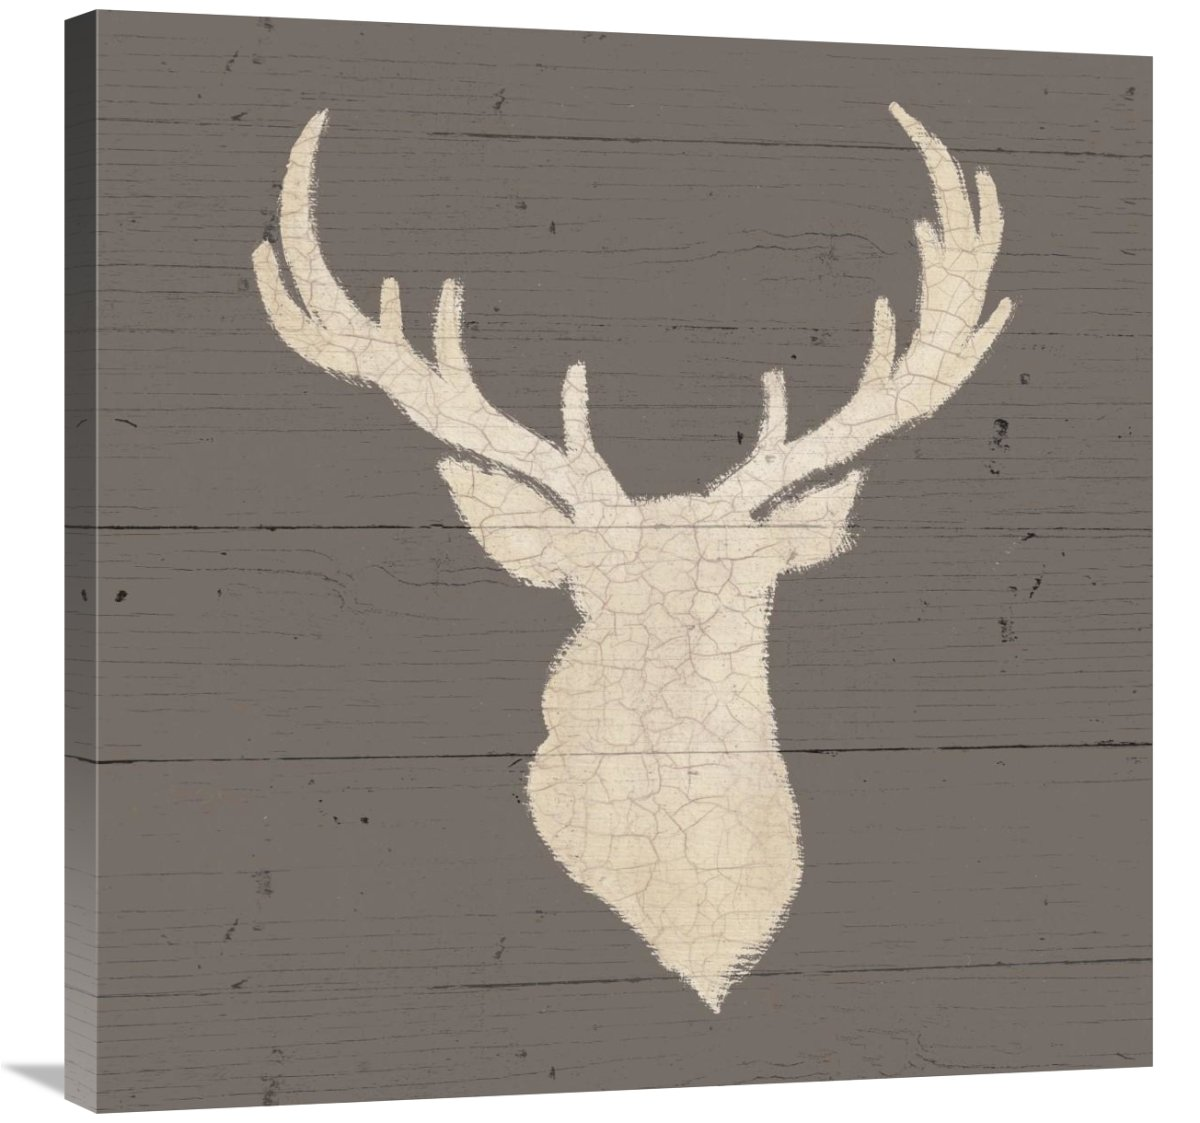 Rustic Elegance I on Gray Wood Giclee Stretched Canvas Artwork 30 x 30 Global Gallery James Wiens